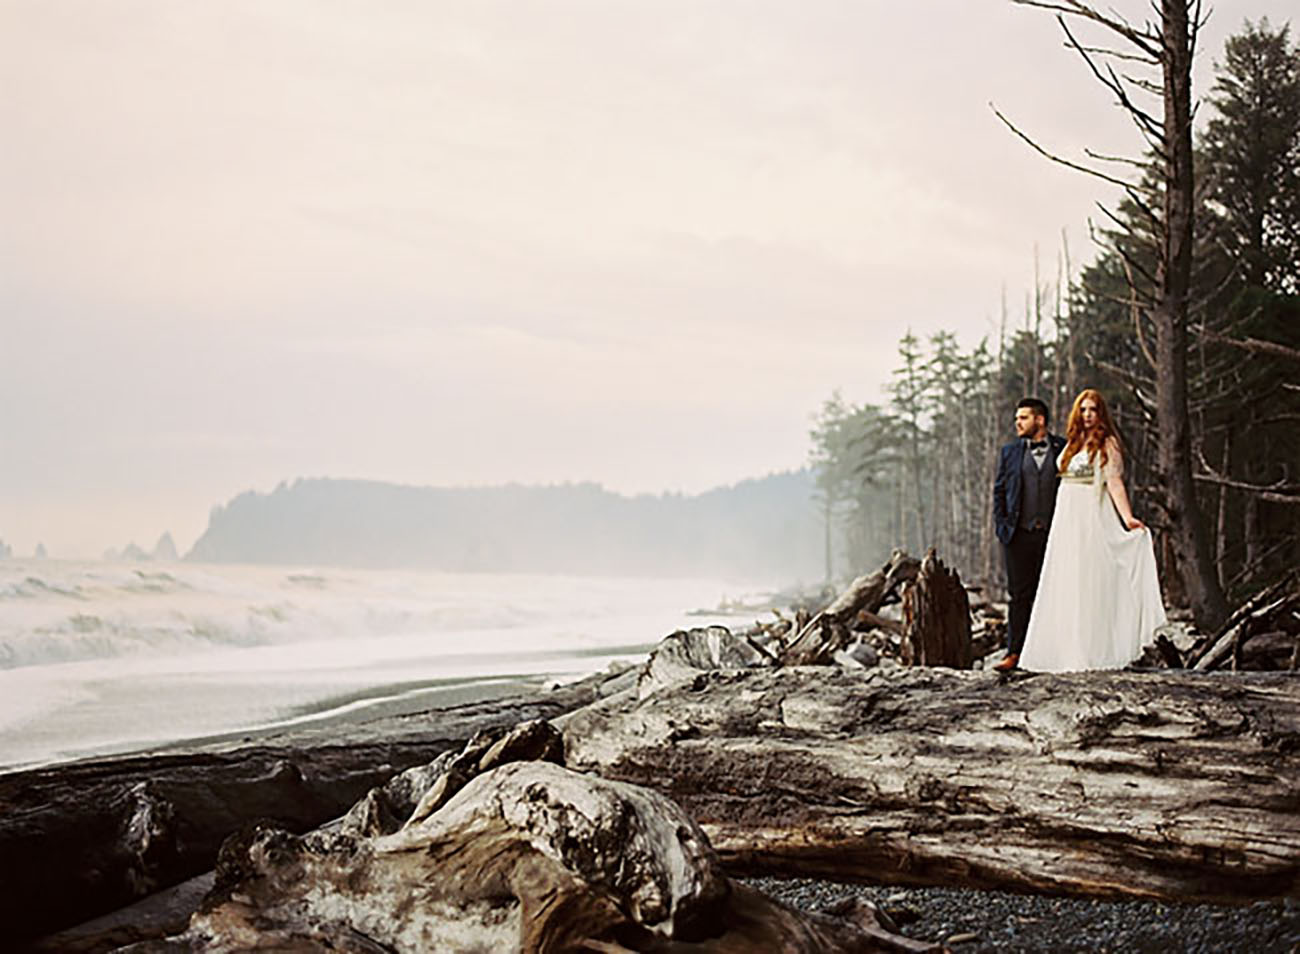 Olympic National Park in La Push, Washington is a treelined coast with the sound of waves to accompany your elopement